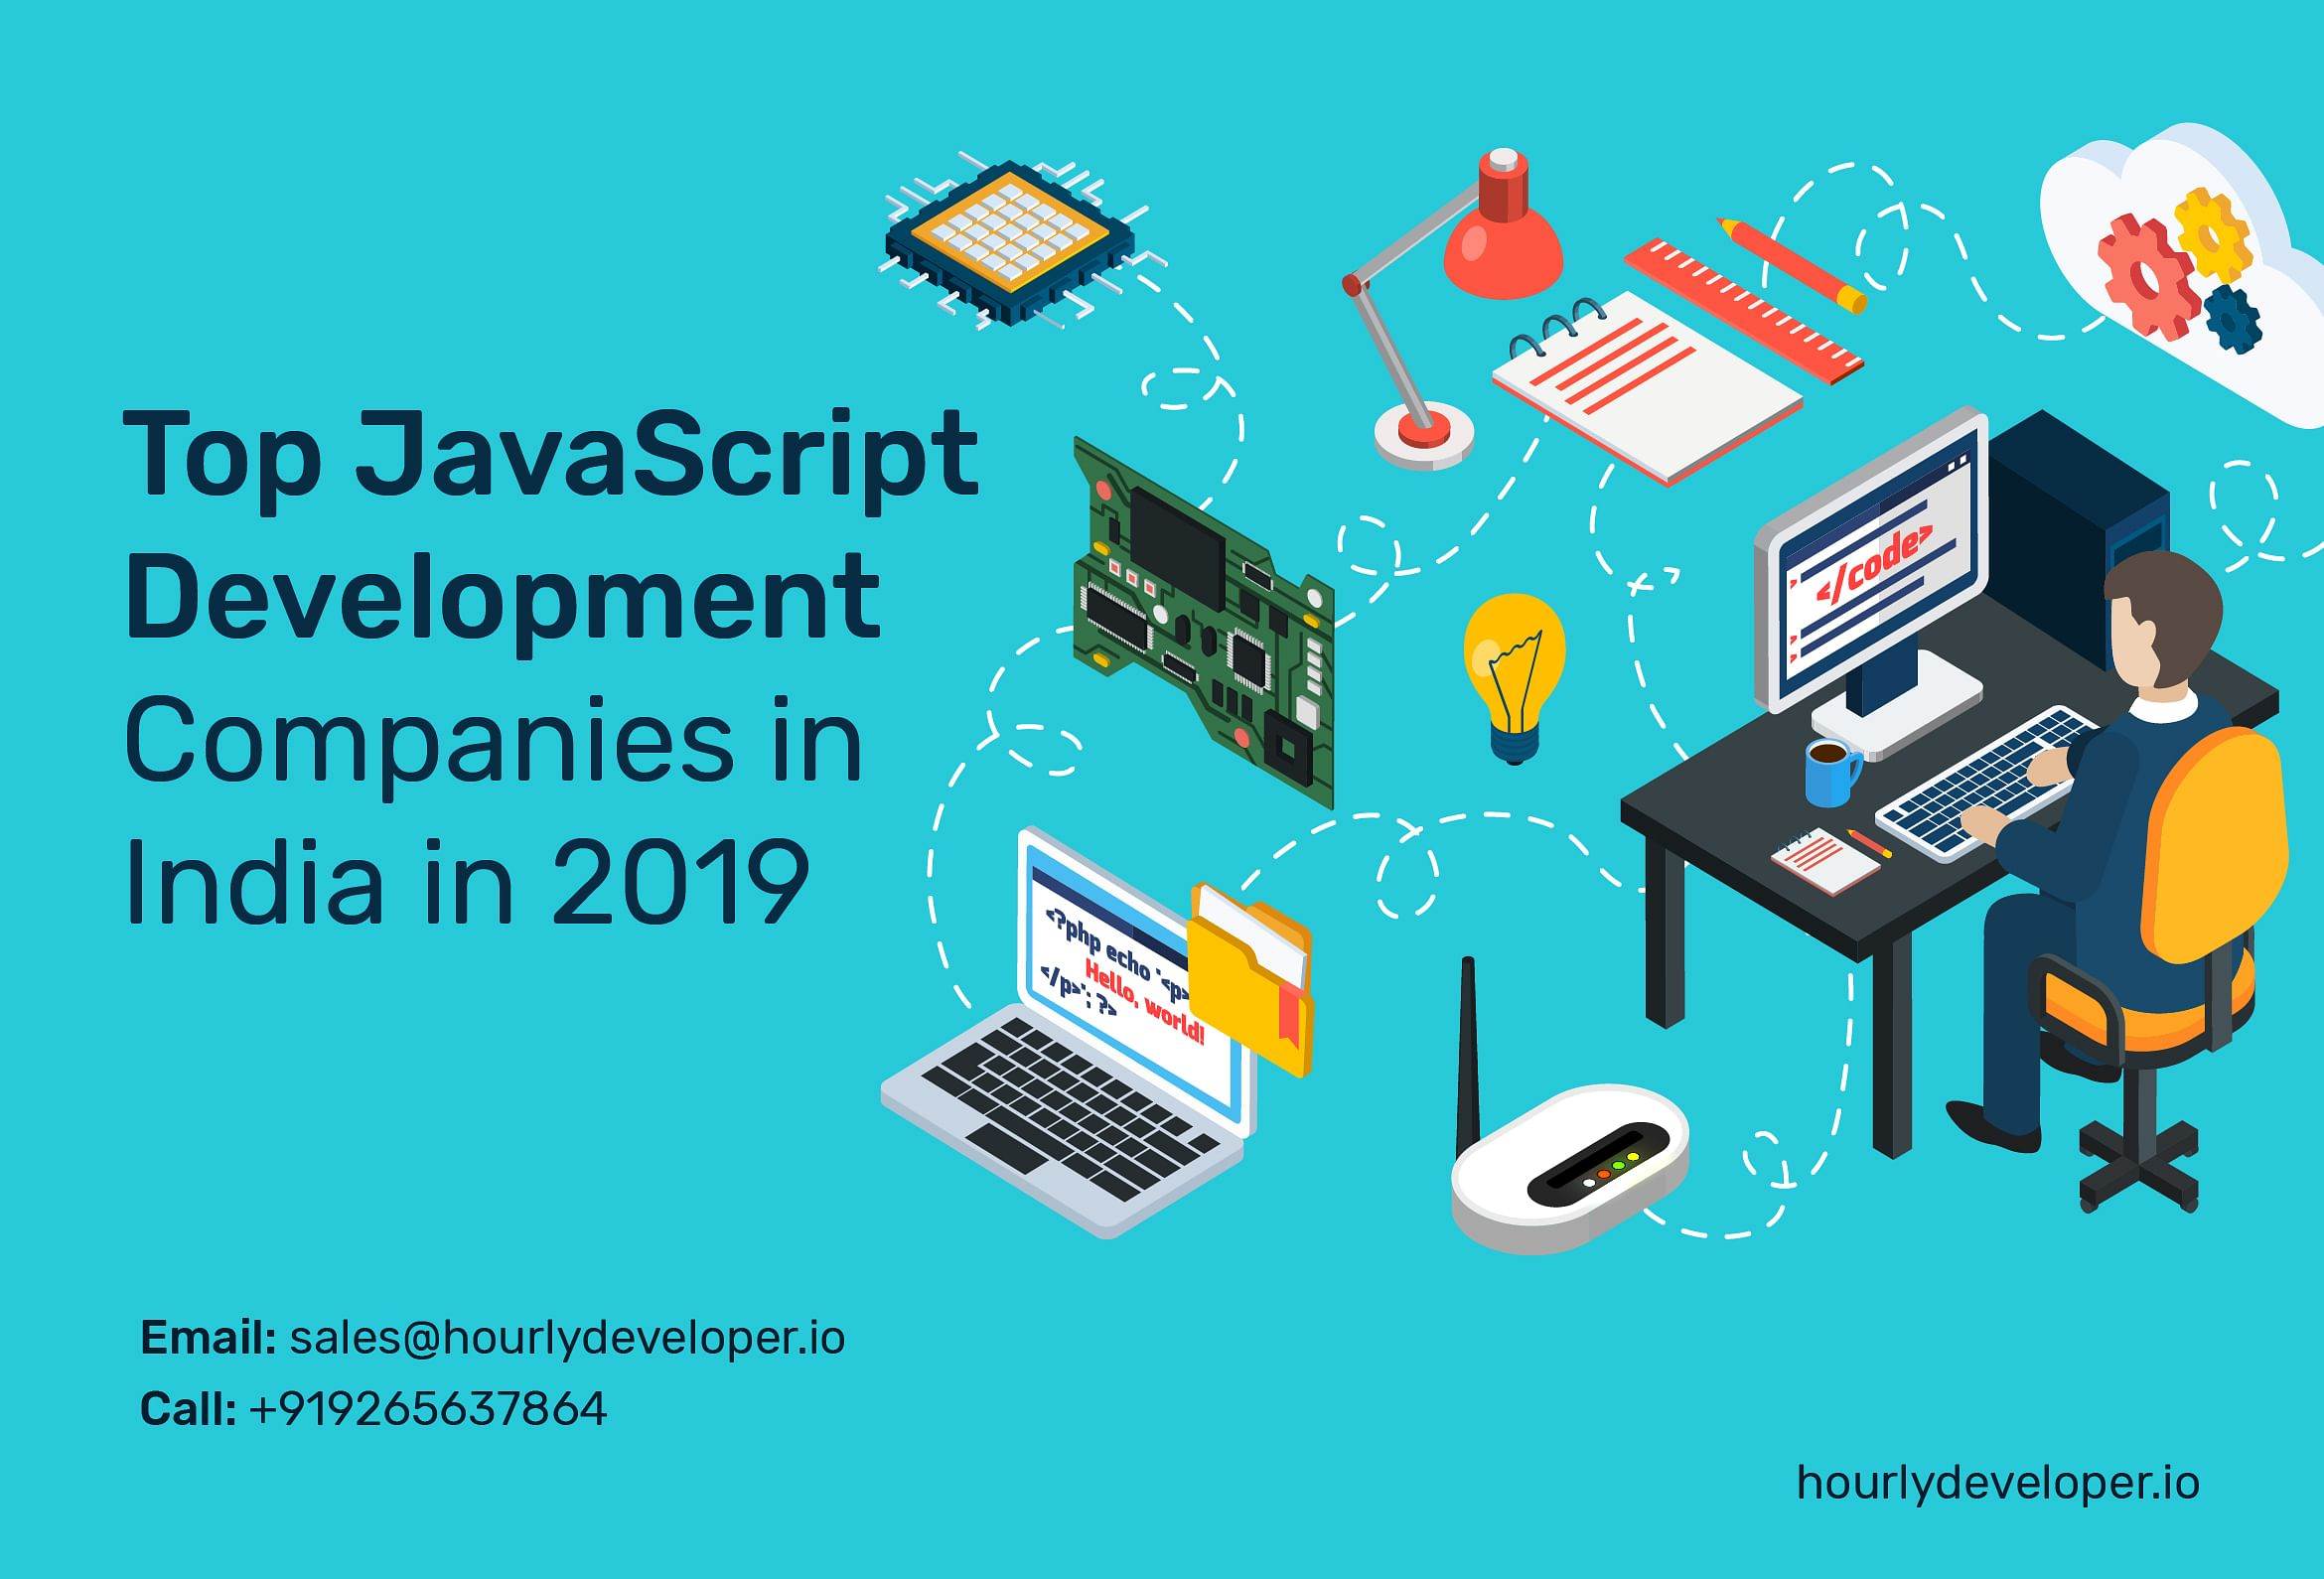 Top Javascript Development Companies In India In 2019